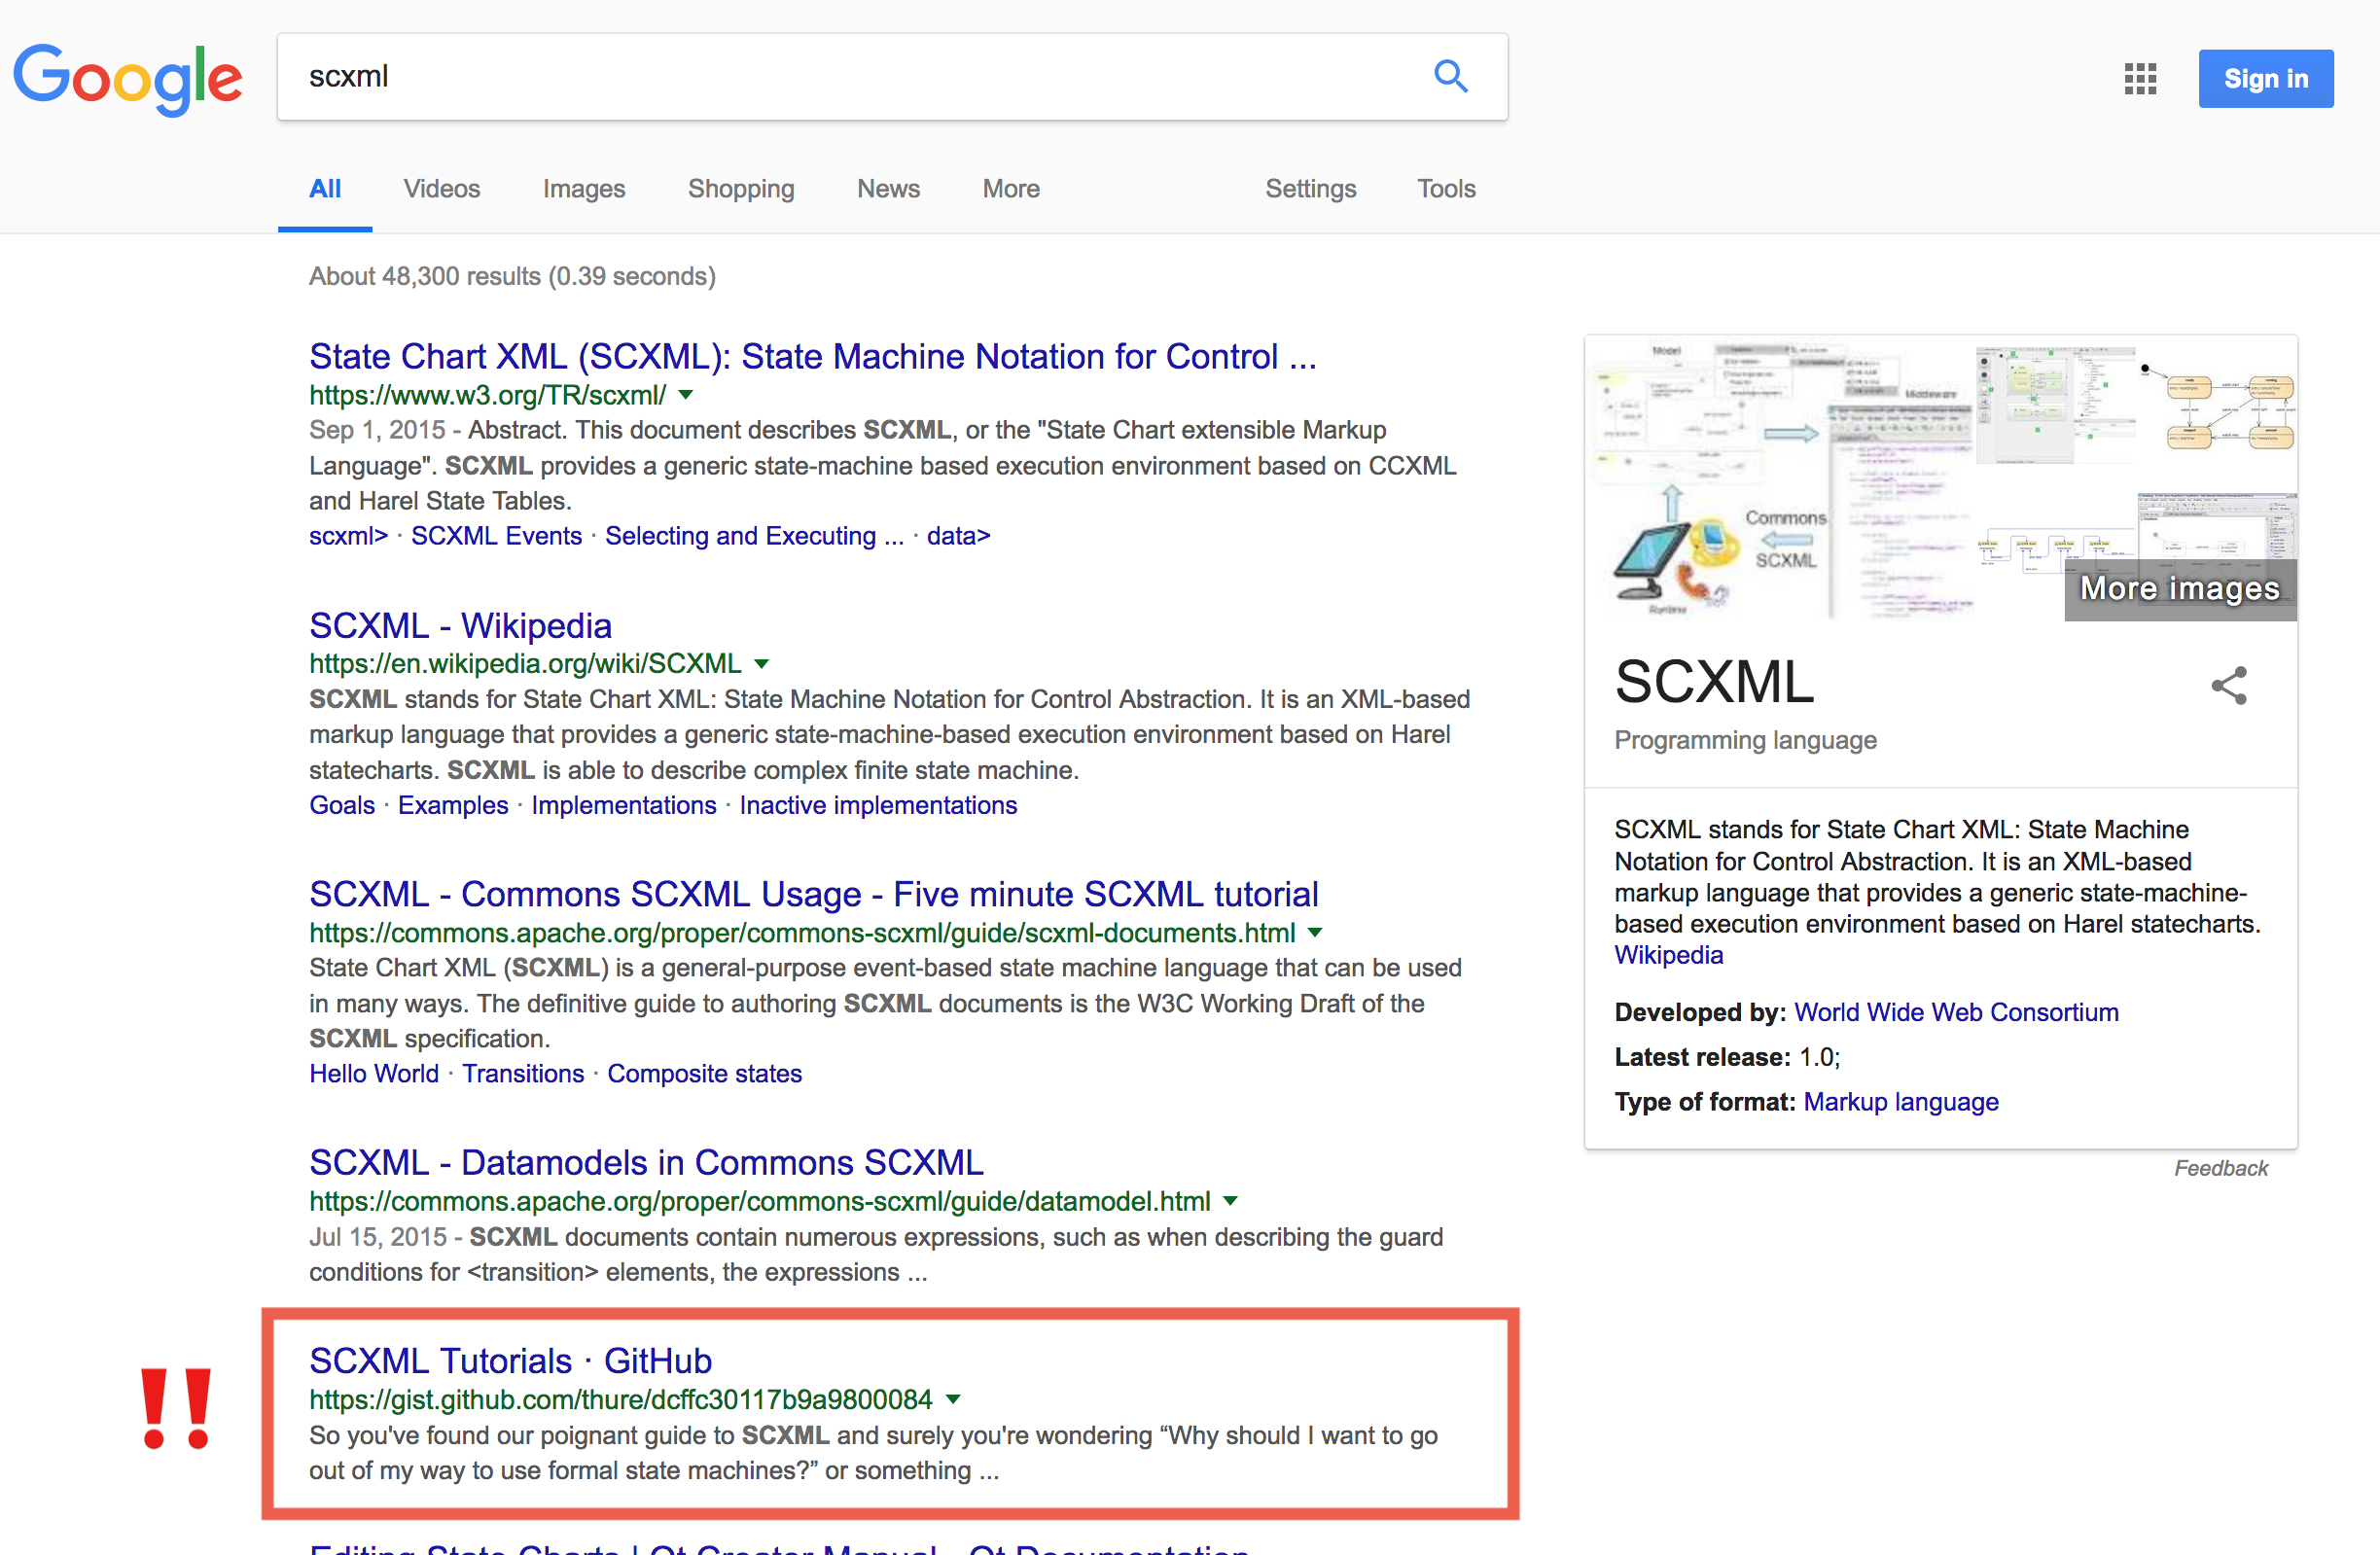 SCXML Tutorials as result №5 in Google